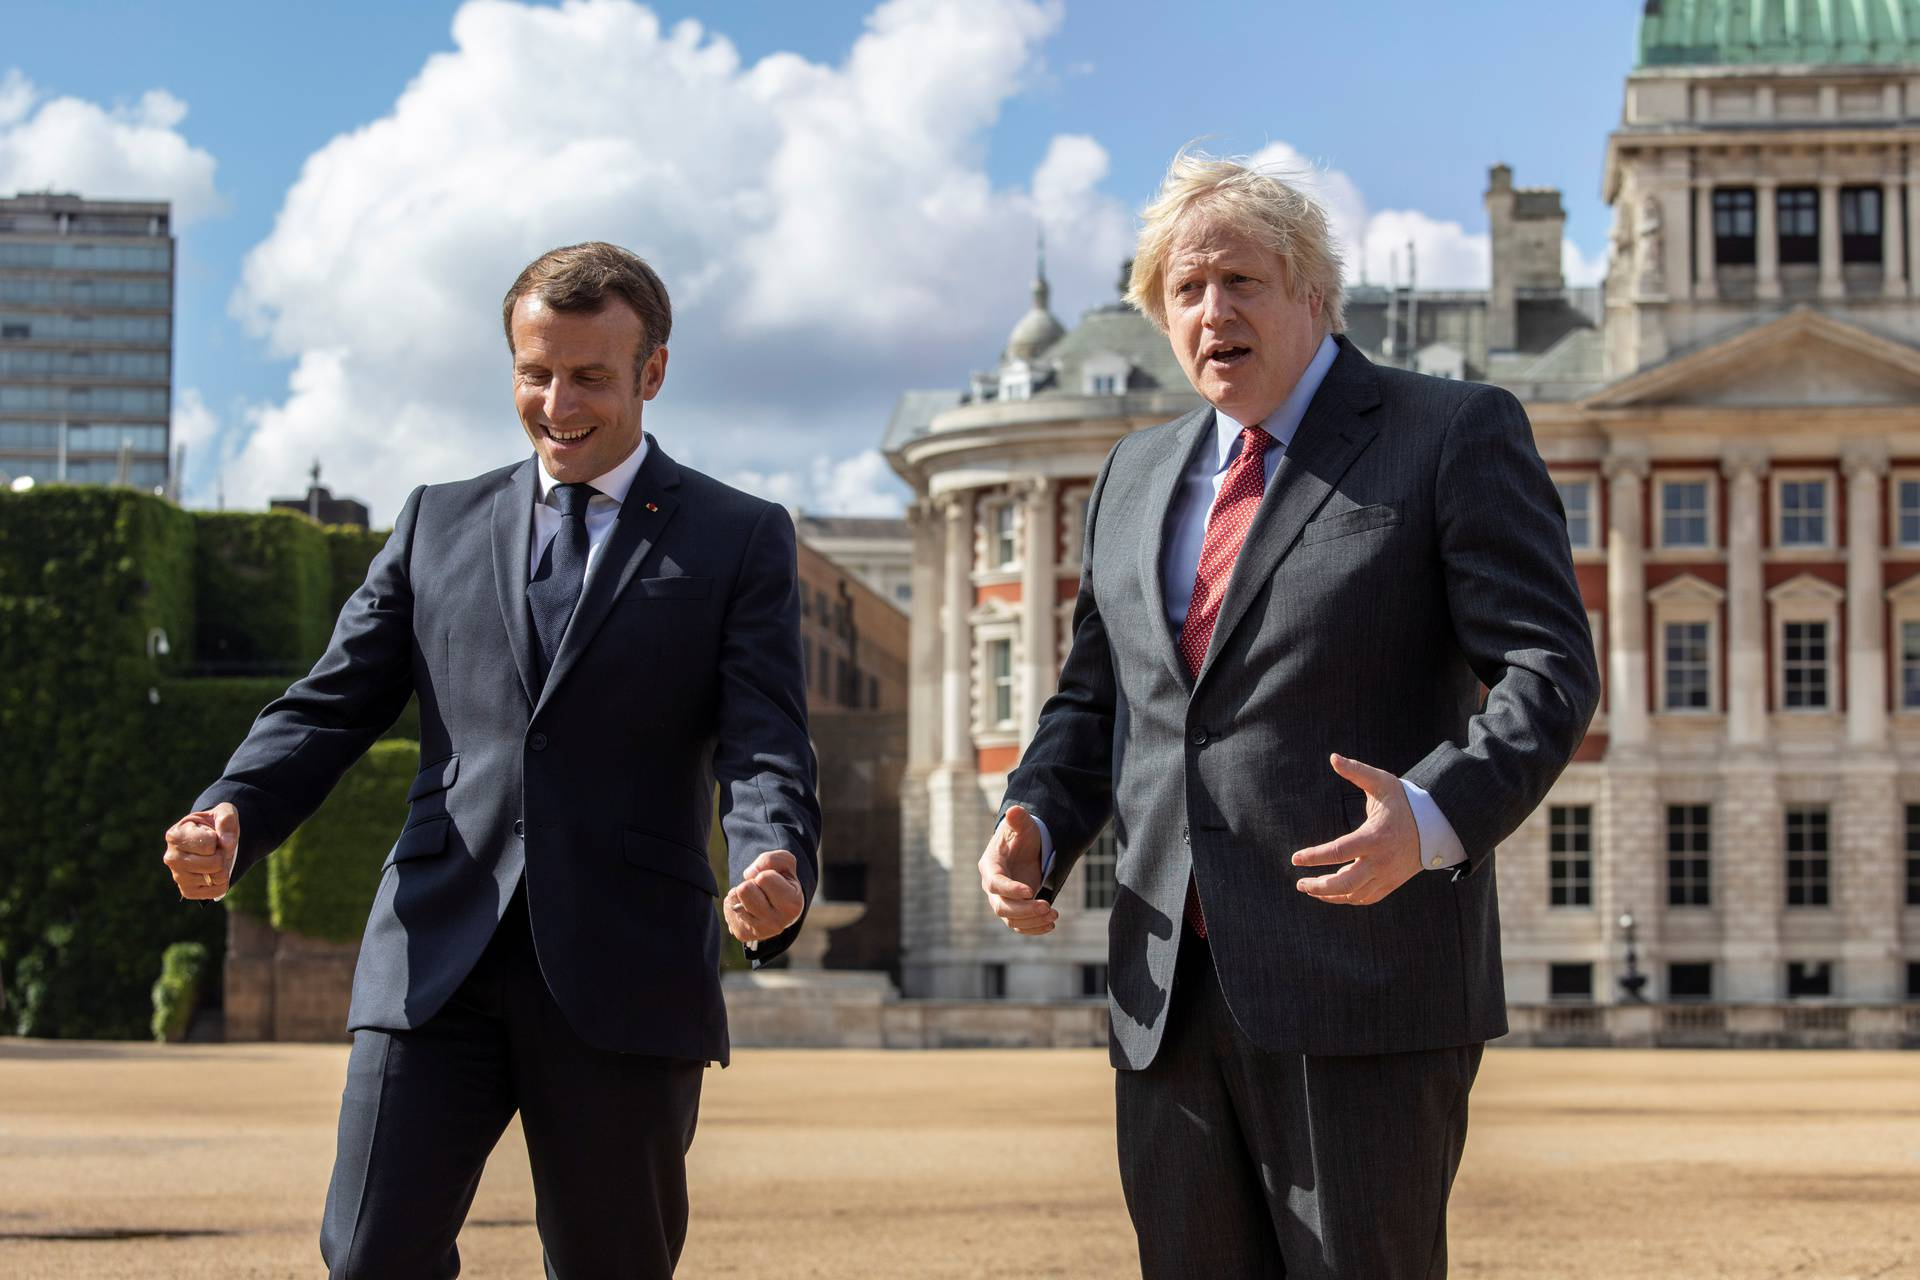 British Prime Minister Boris Johnson and French President Emmanuel Macron react after watching The Red Arrows and La Patrouille de France perform a flypast, at Horse Guards Parade in London